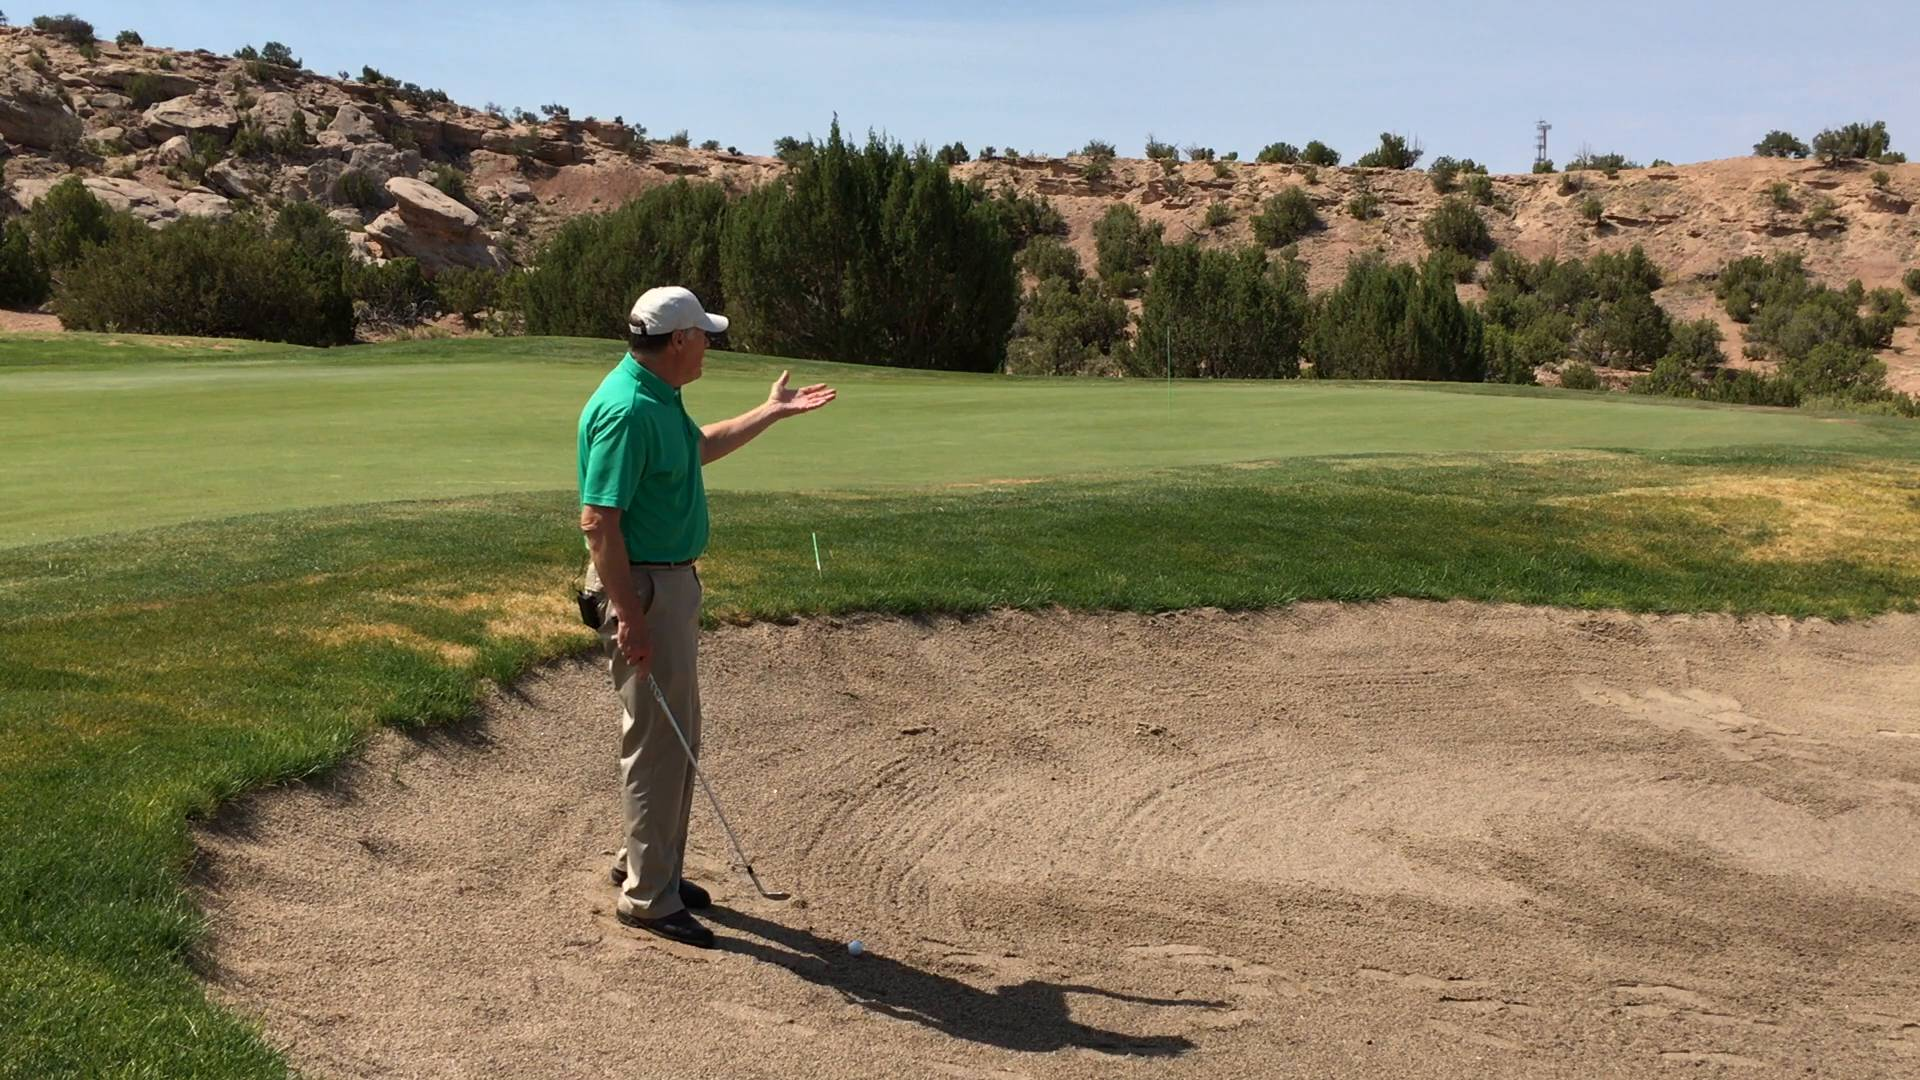 Hit a Bunker Shot with a Side Hill, Ball Below Your Feet